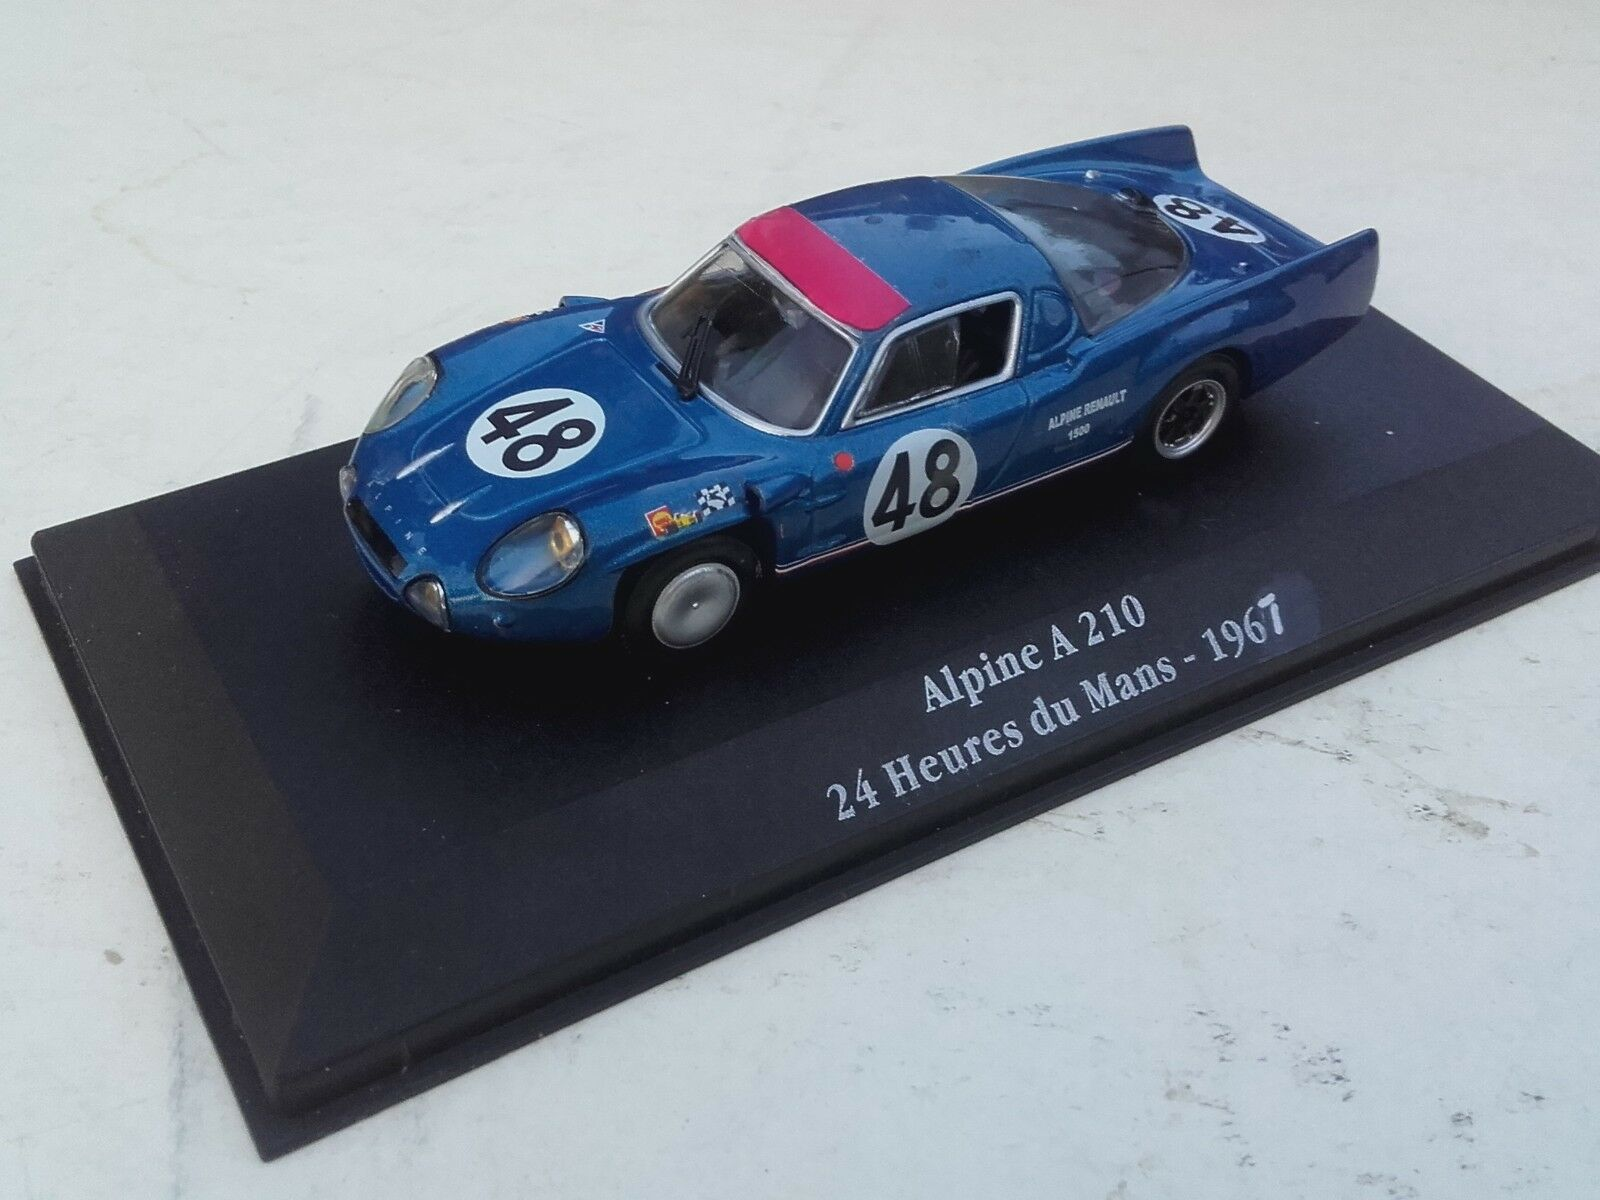 Alpine a210 n 48 24 hours of le mans 1967 1 43 12eme